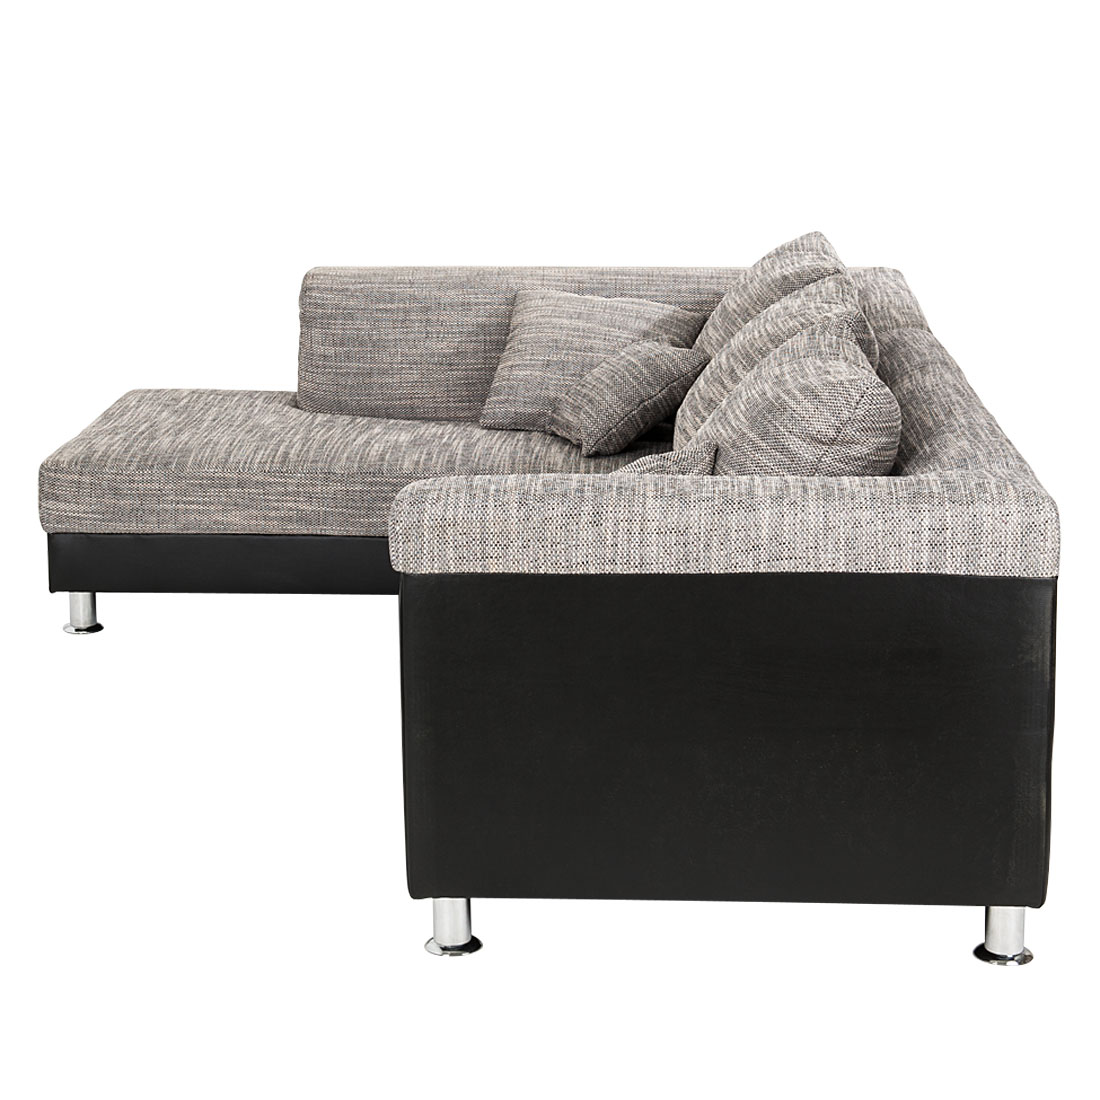 ecksofa stoff schwarz grau ottomane links eckcouch sofa couch couchgarnitur neu ebay. Black Bedroom Furniture Sets. Home Design Ideas